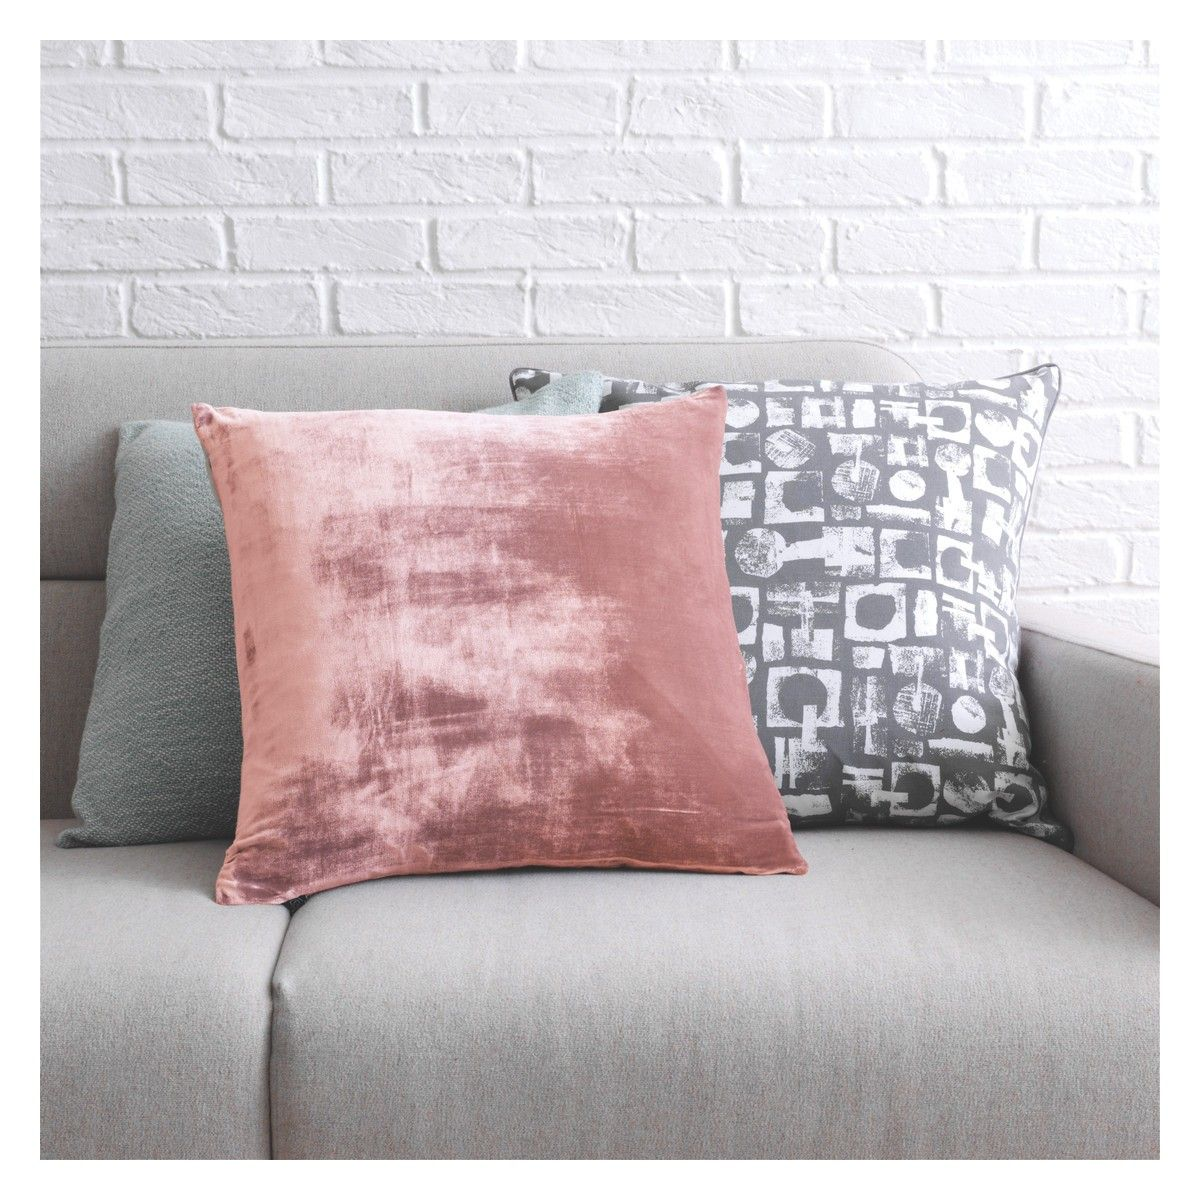 REGENCY Pink velvet cushion 45 x 45cm Pink velvet Regency and